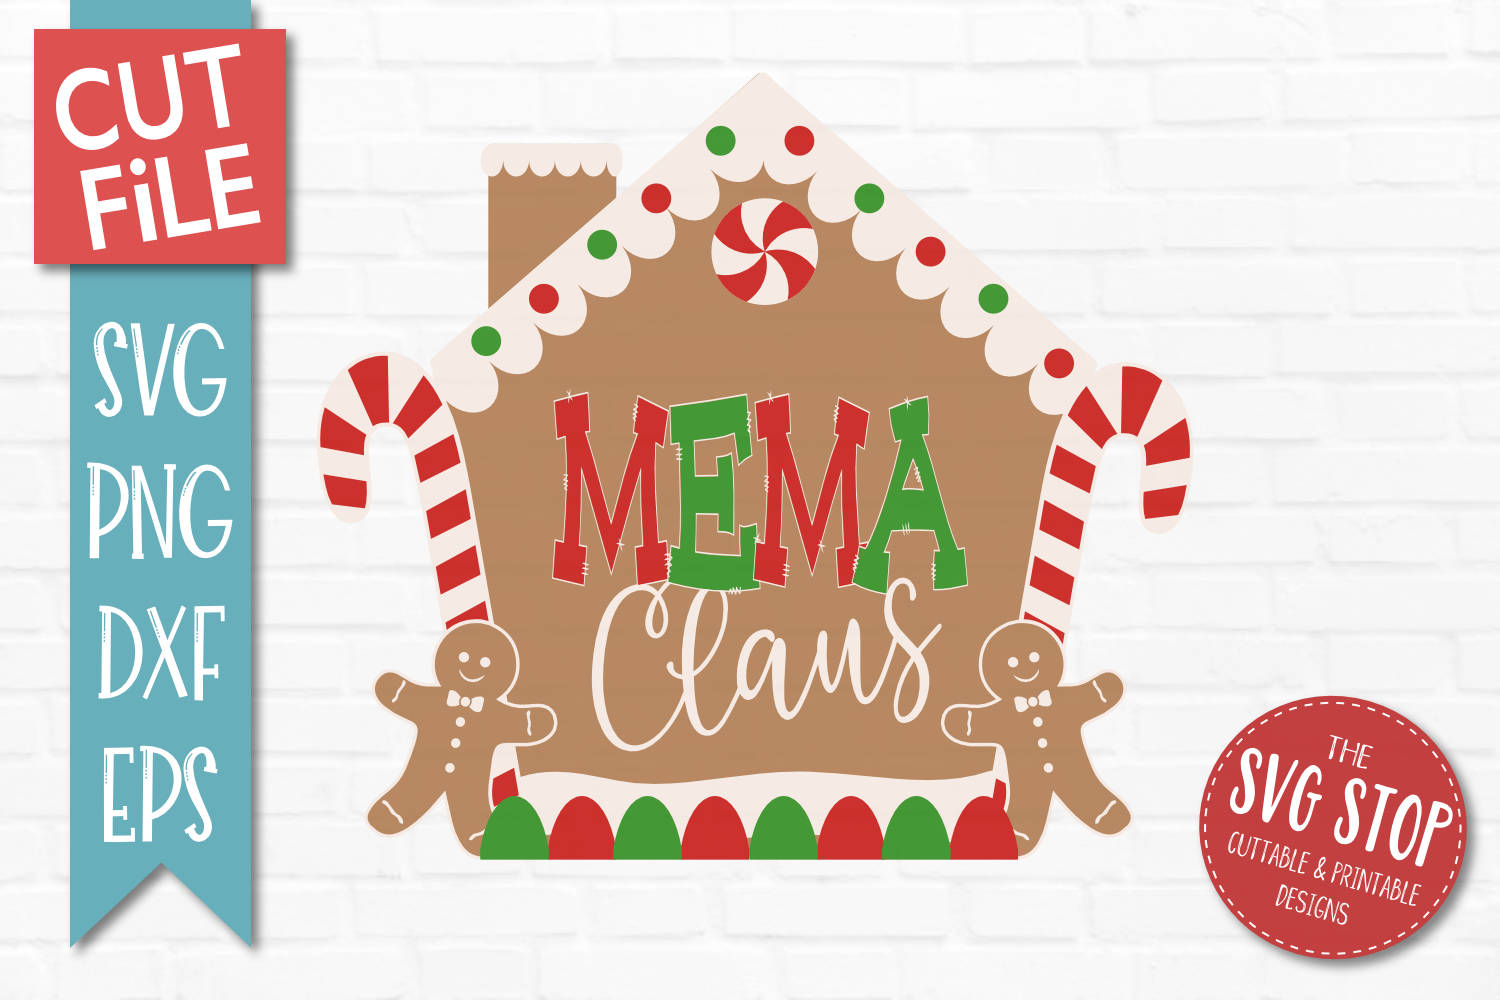 Mema Claus Gingerbread Christmas SVG, PNG, DXF, EPS example image 1